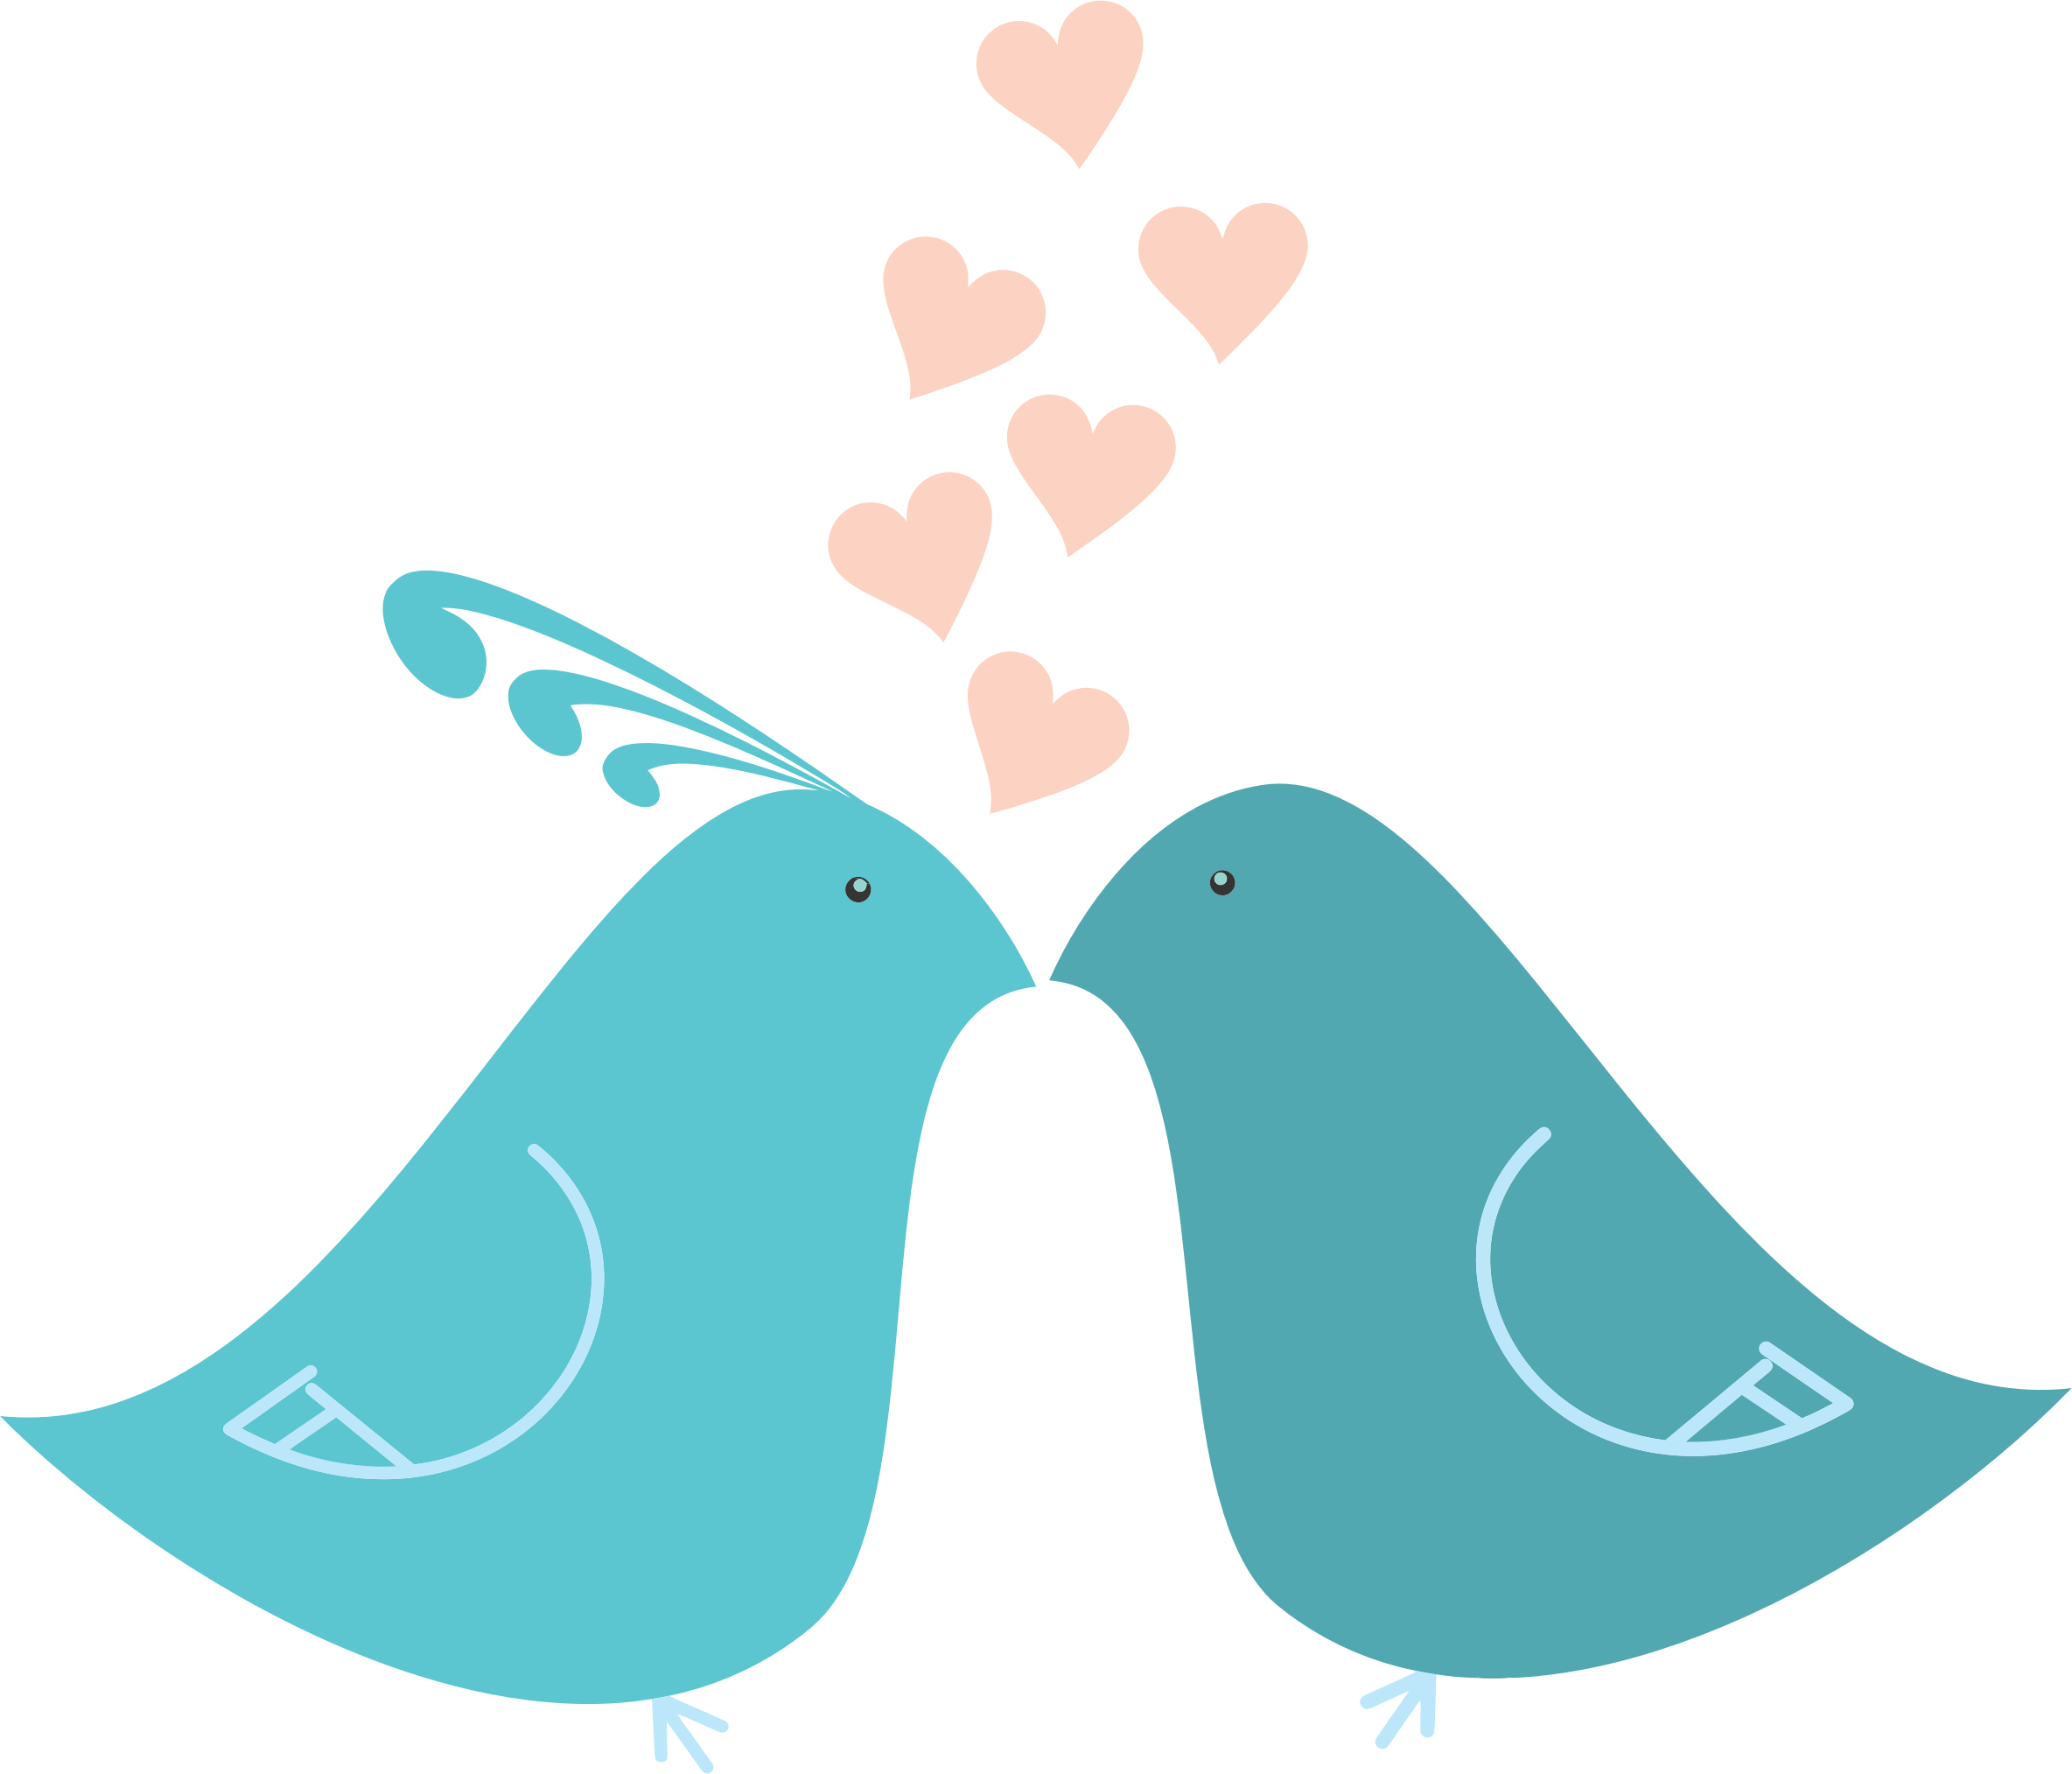 Love Birds Png - Love Birds Png Clipart Png Image, Transparent background PNG HD thumbnail